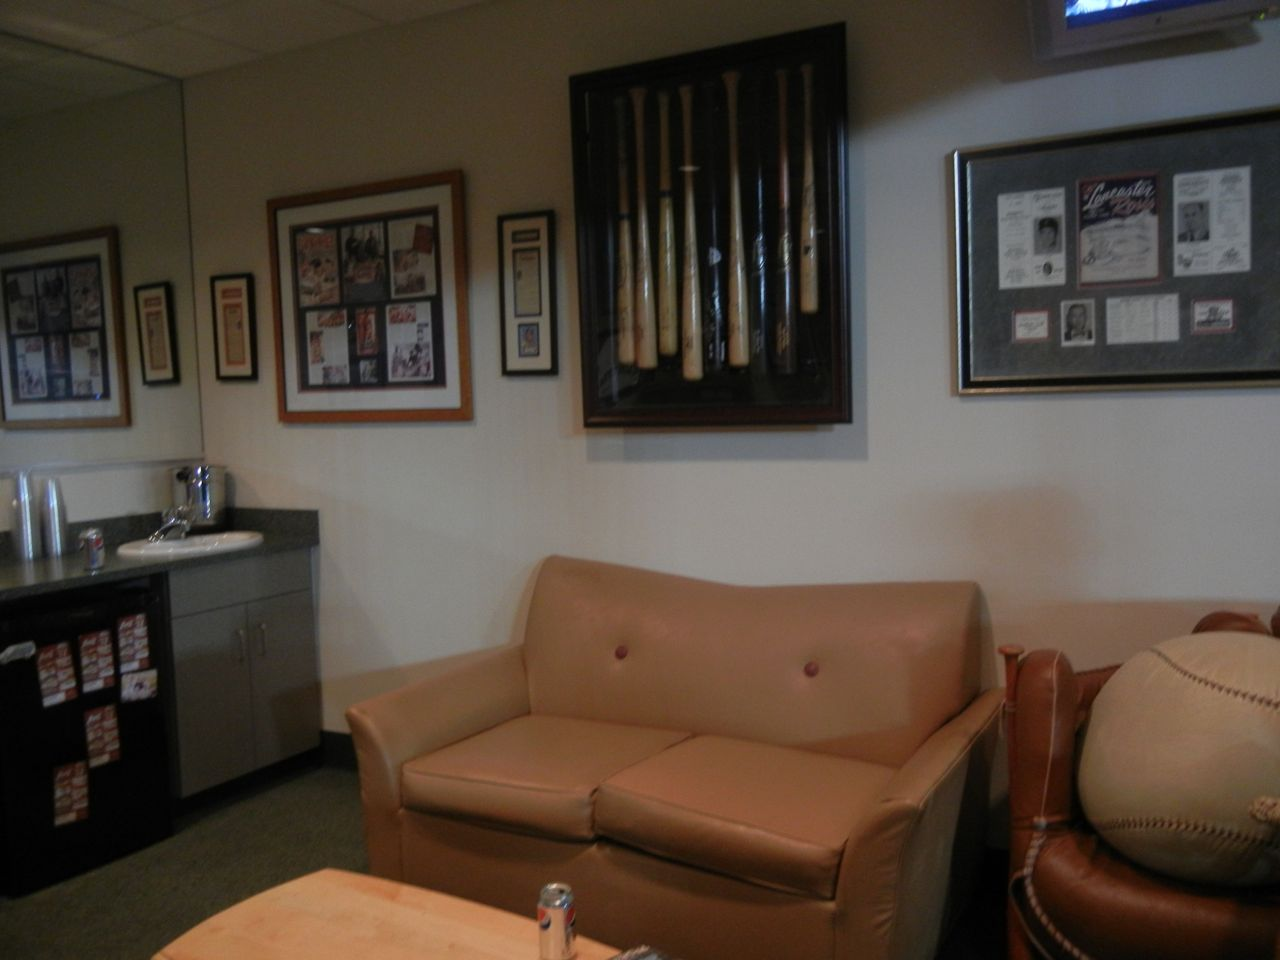 The Bats Added To Baseball Theme Of Room And If You Notice Chair Next Leather Sofa Its A Ball Glove